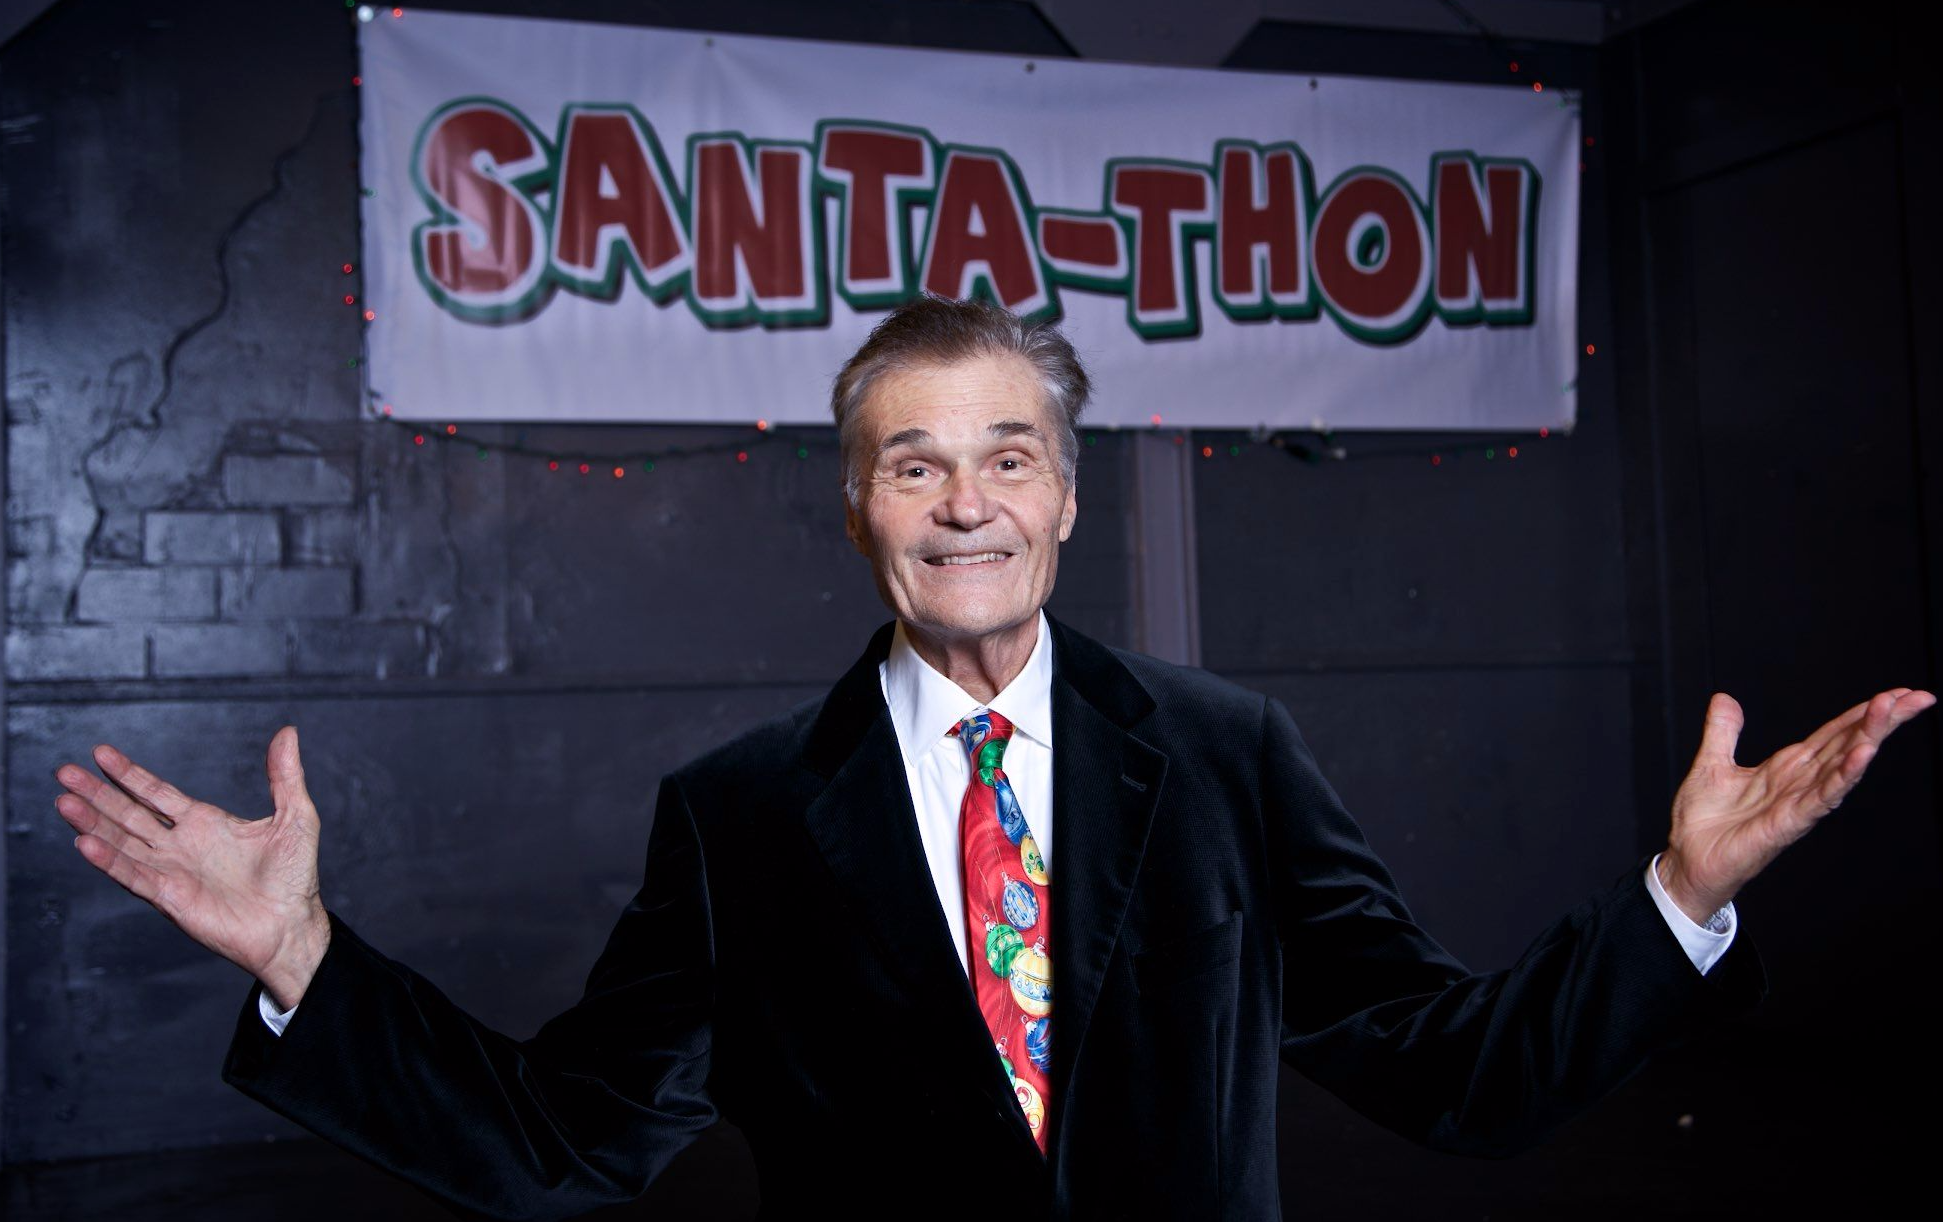 Santa-Thon Host Fred Willard